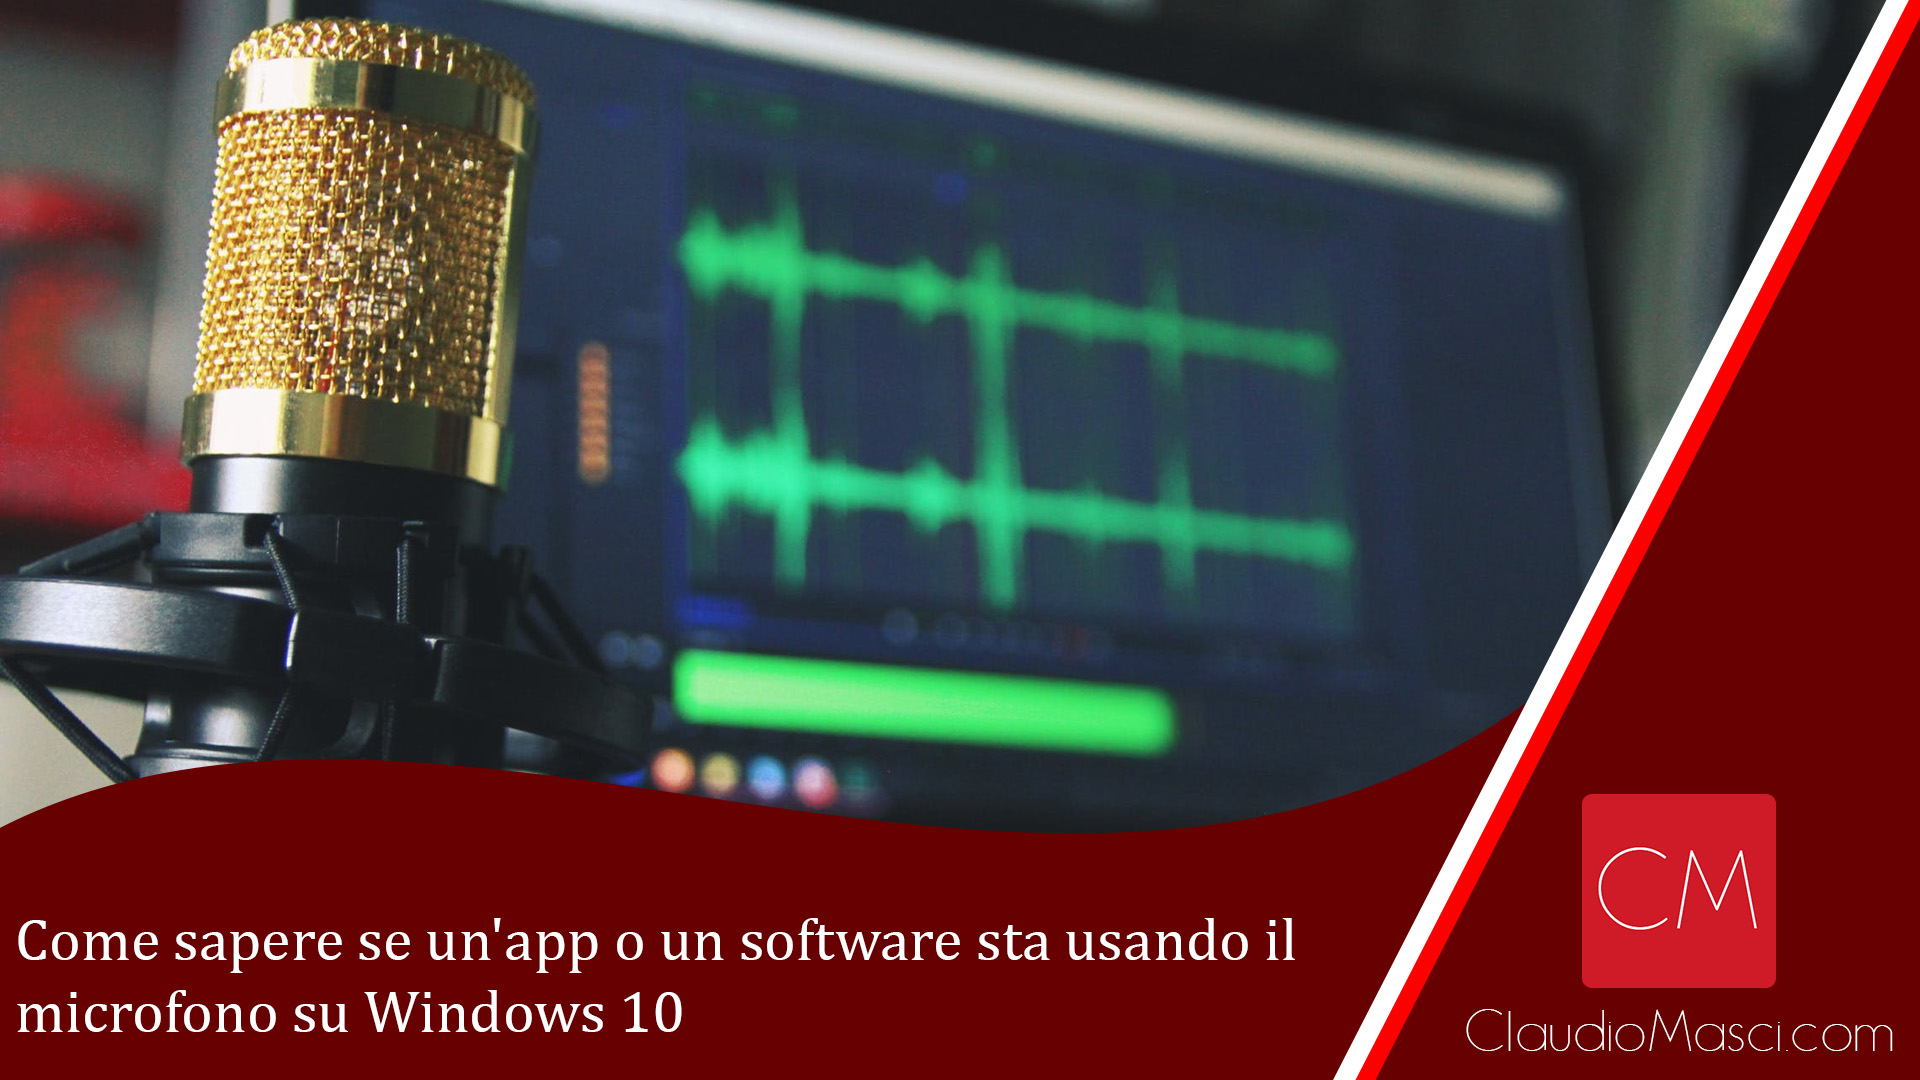 Come sapere se un'app o un software sta usando il microfono su Windows 10